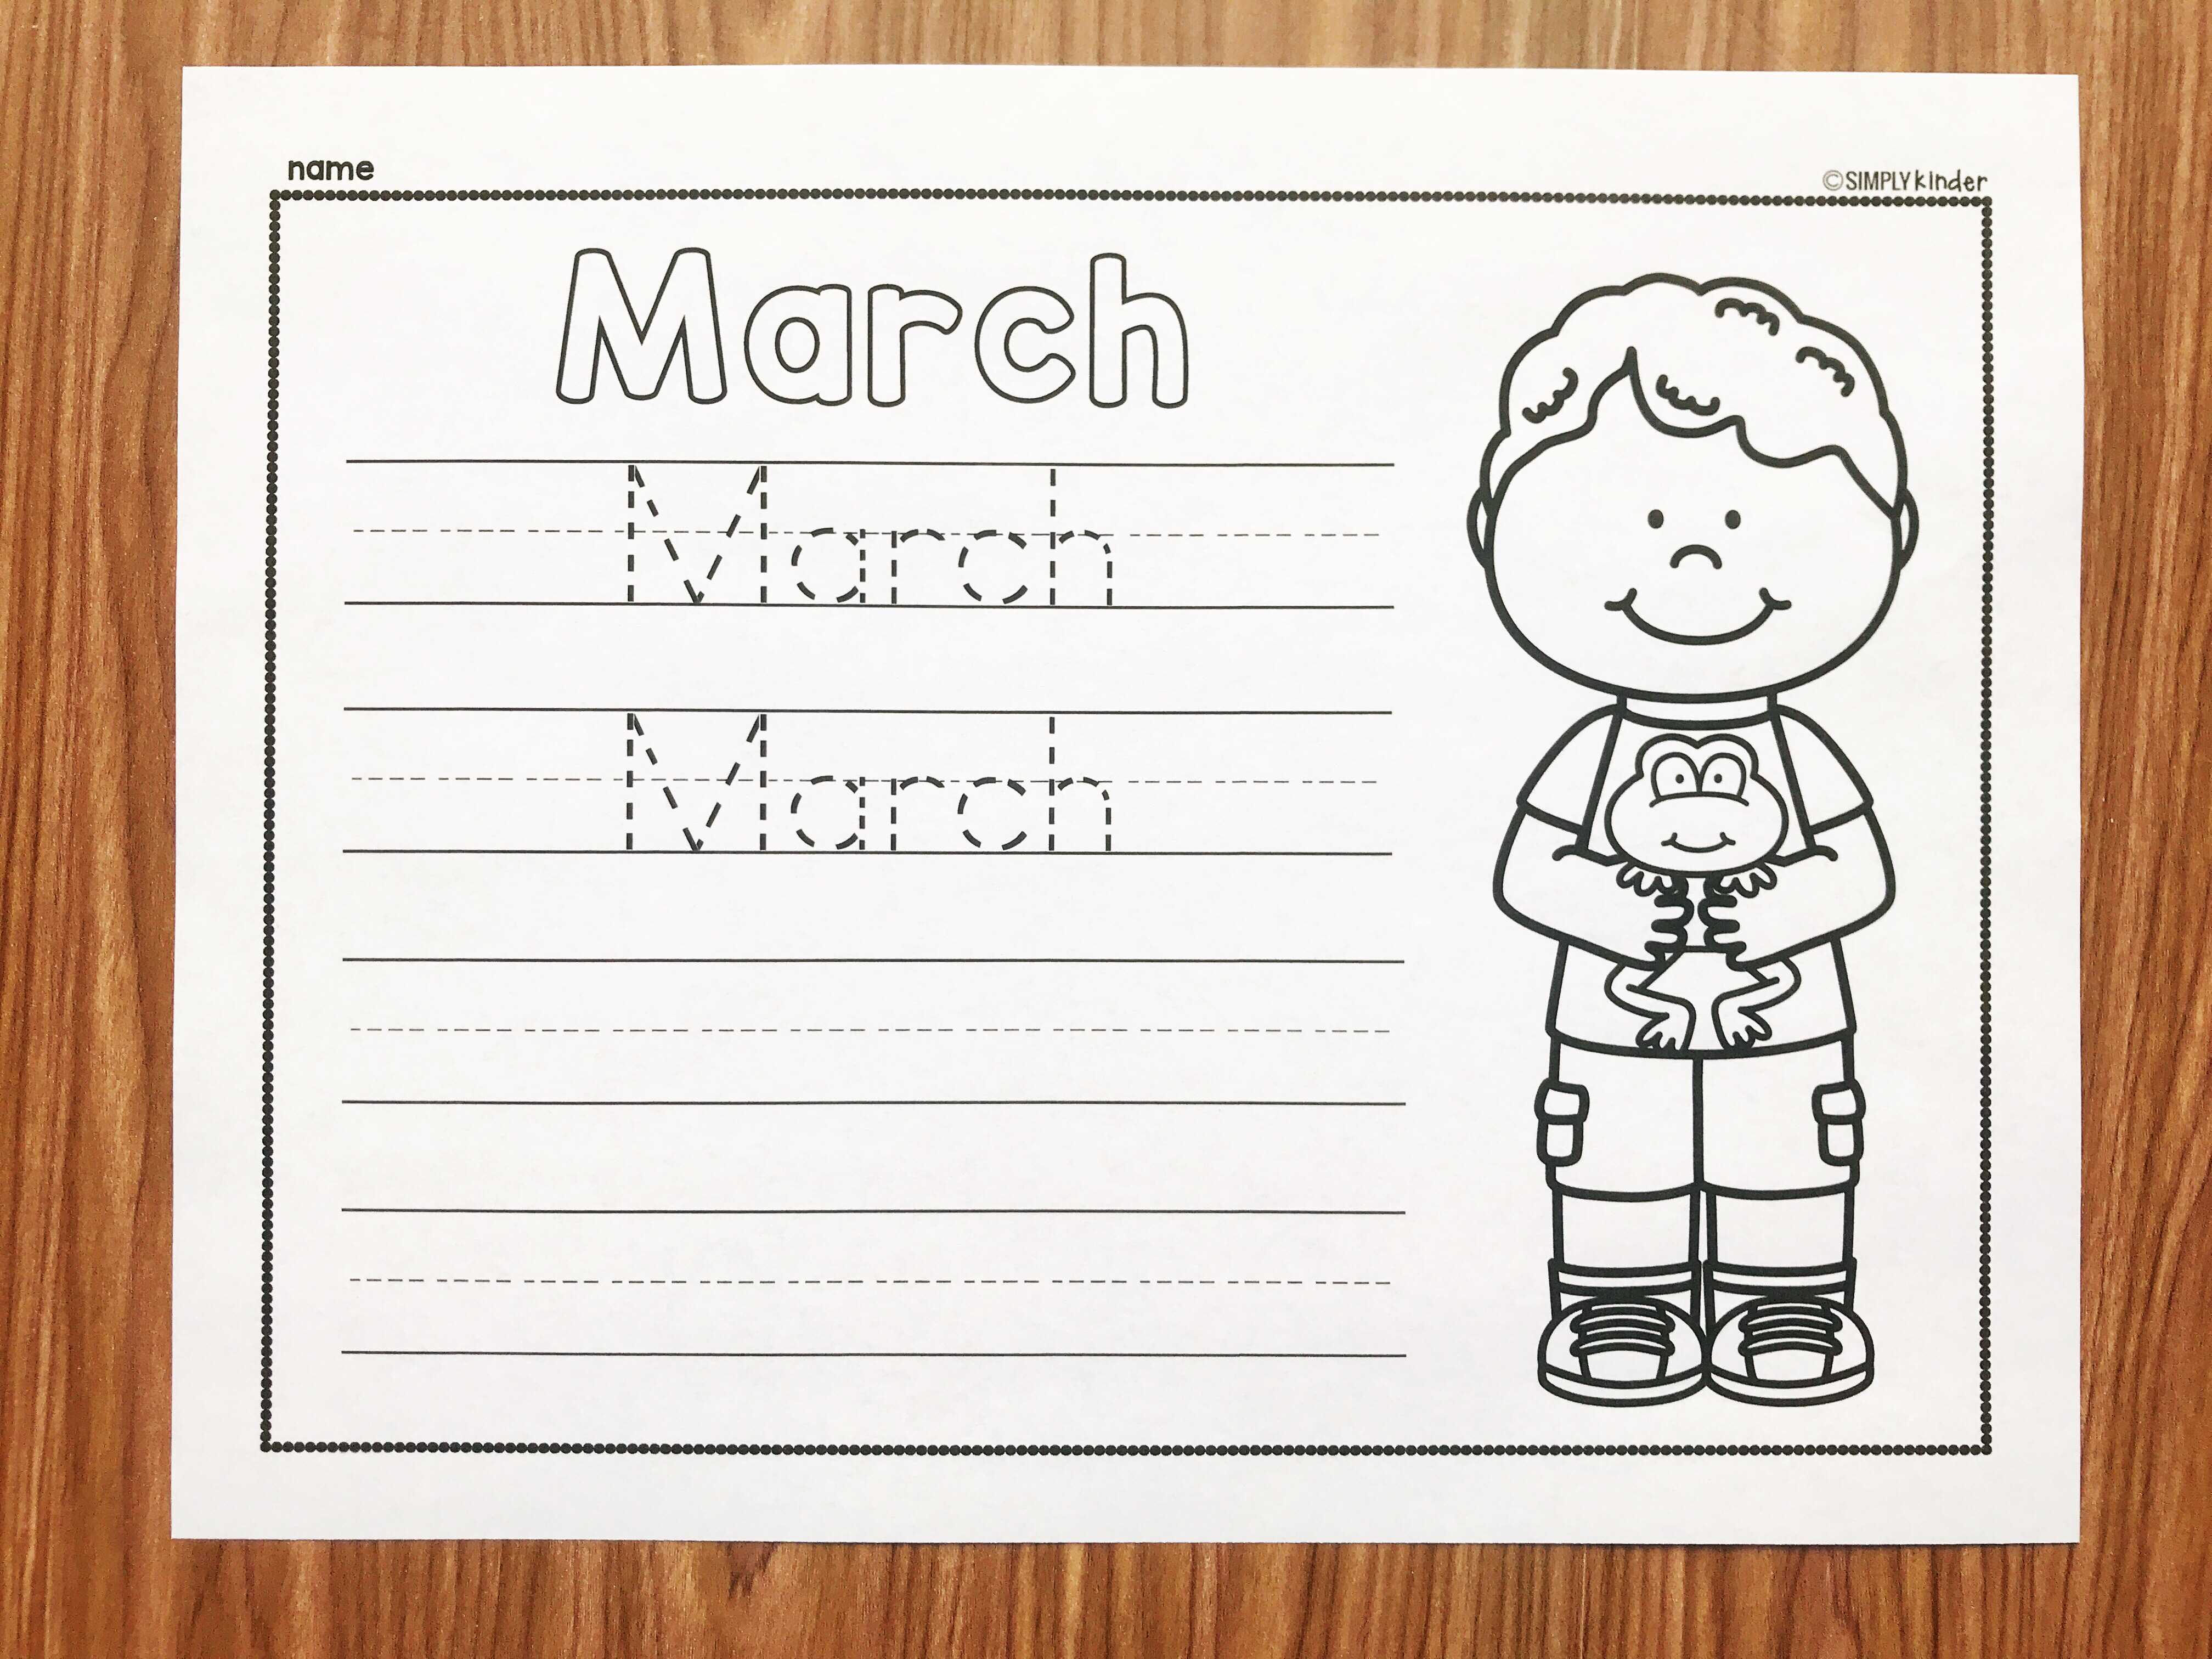 Teach your students to write the word March with these free March Writing Printables from Simply Kinder. Perfect for kindergarten and first grade students.